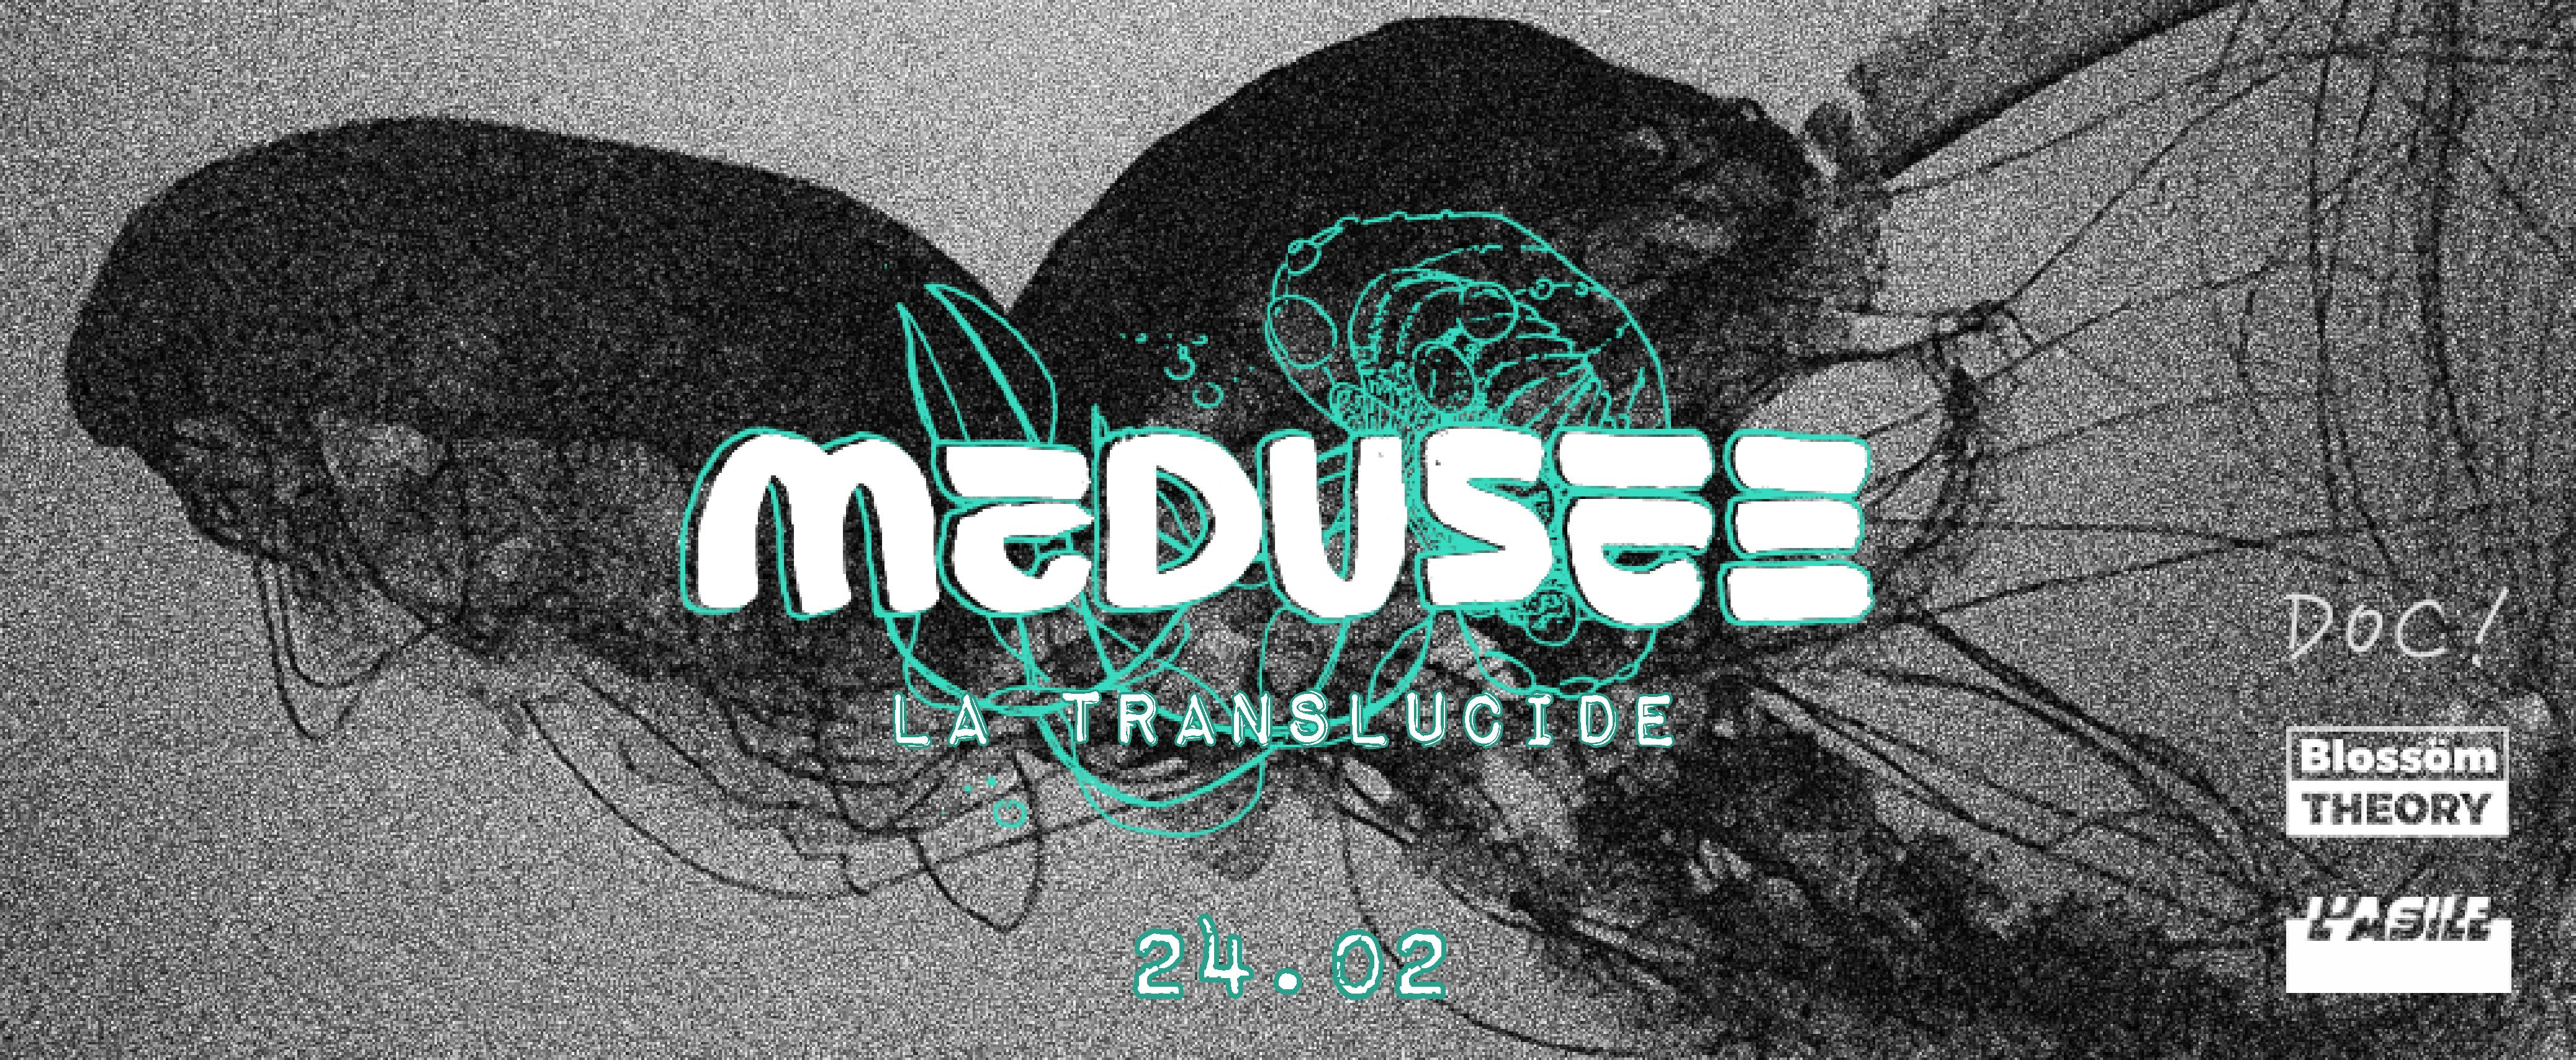 Mailing Medusee-page-001